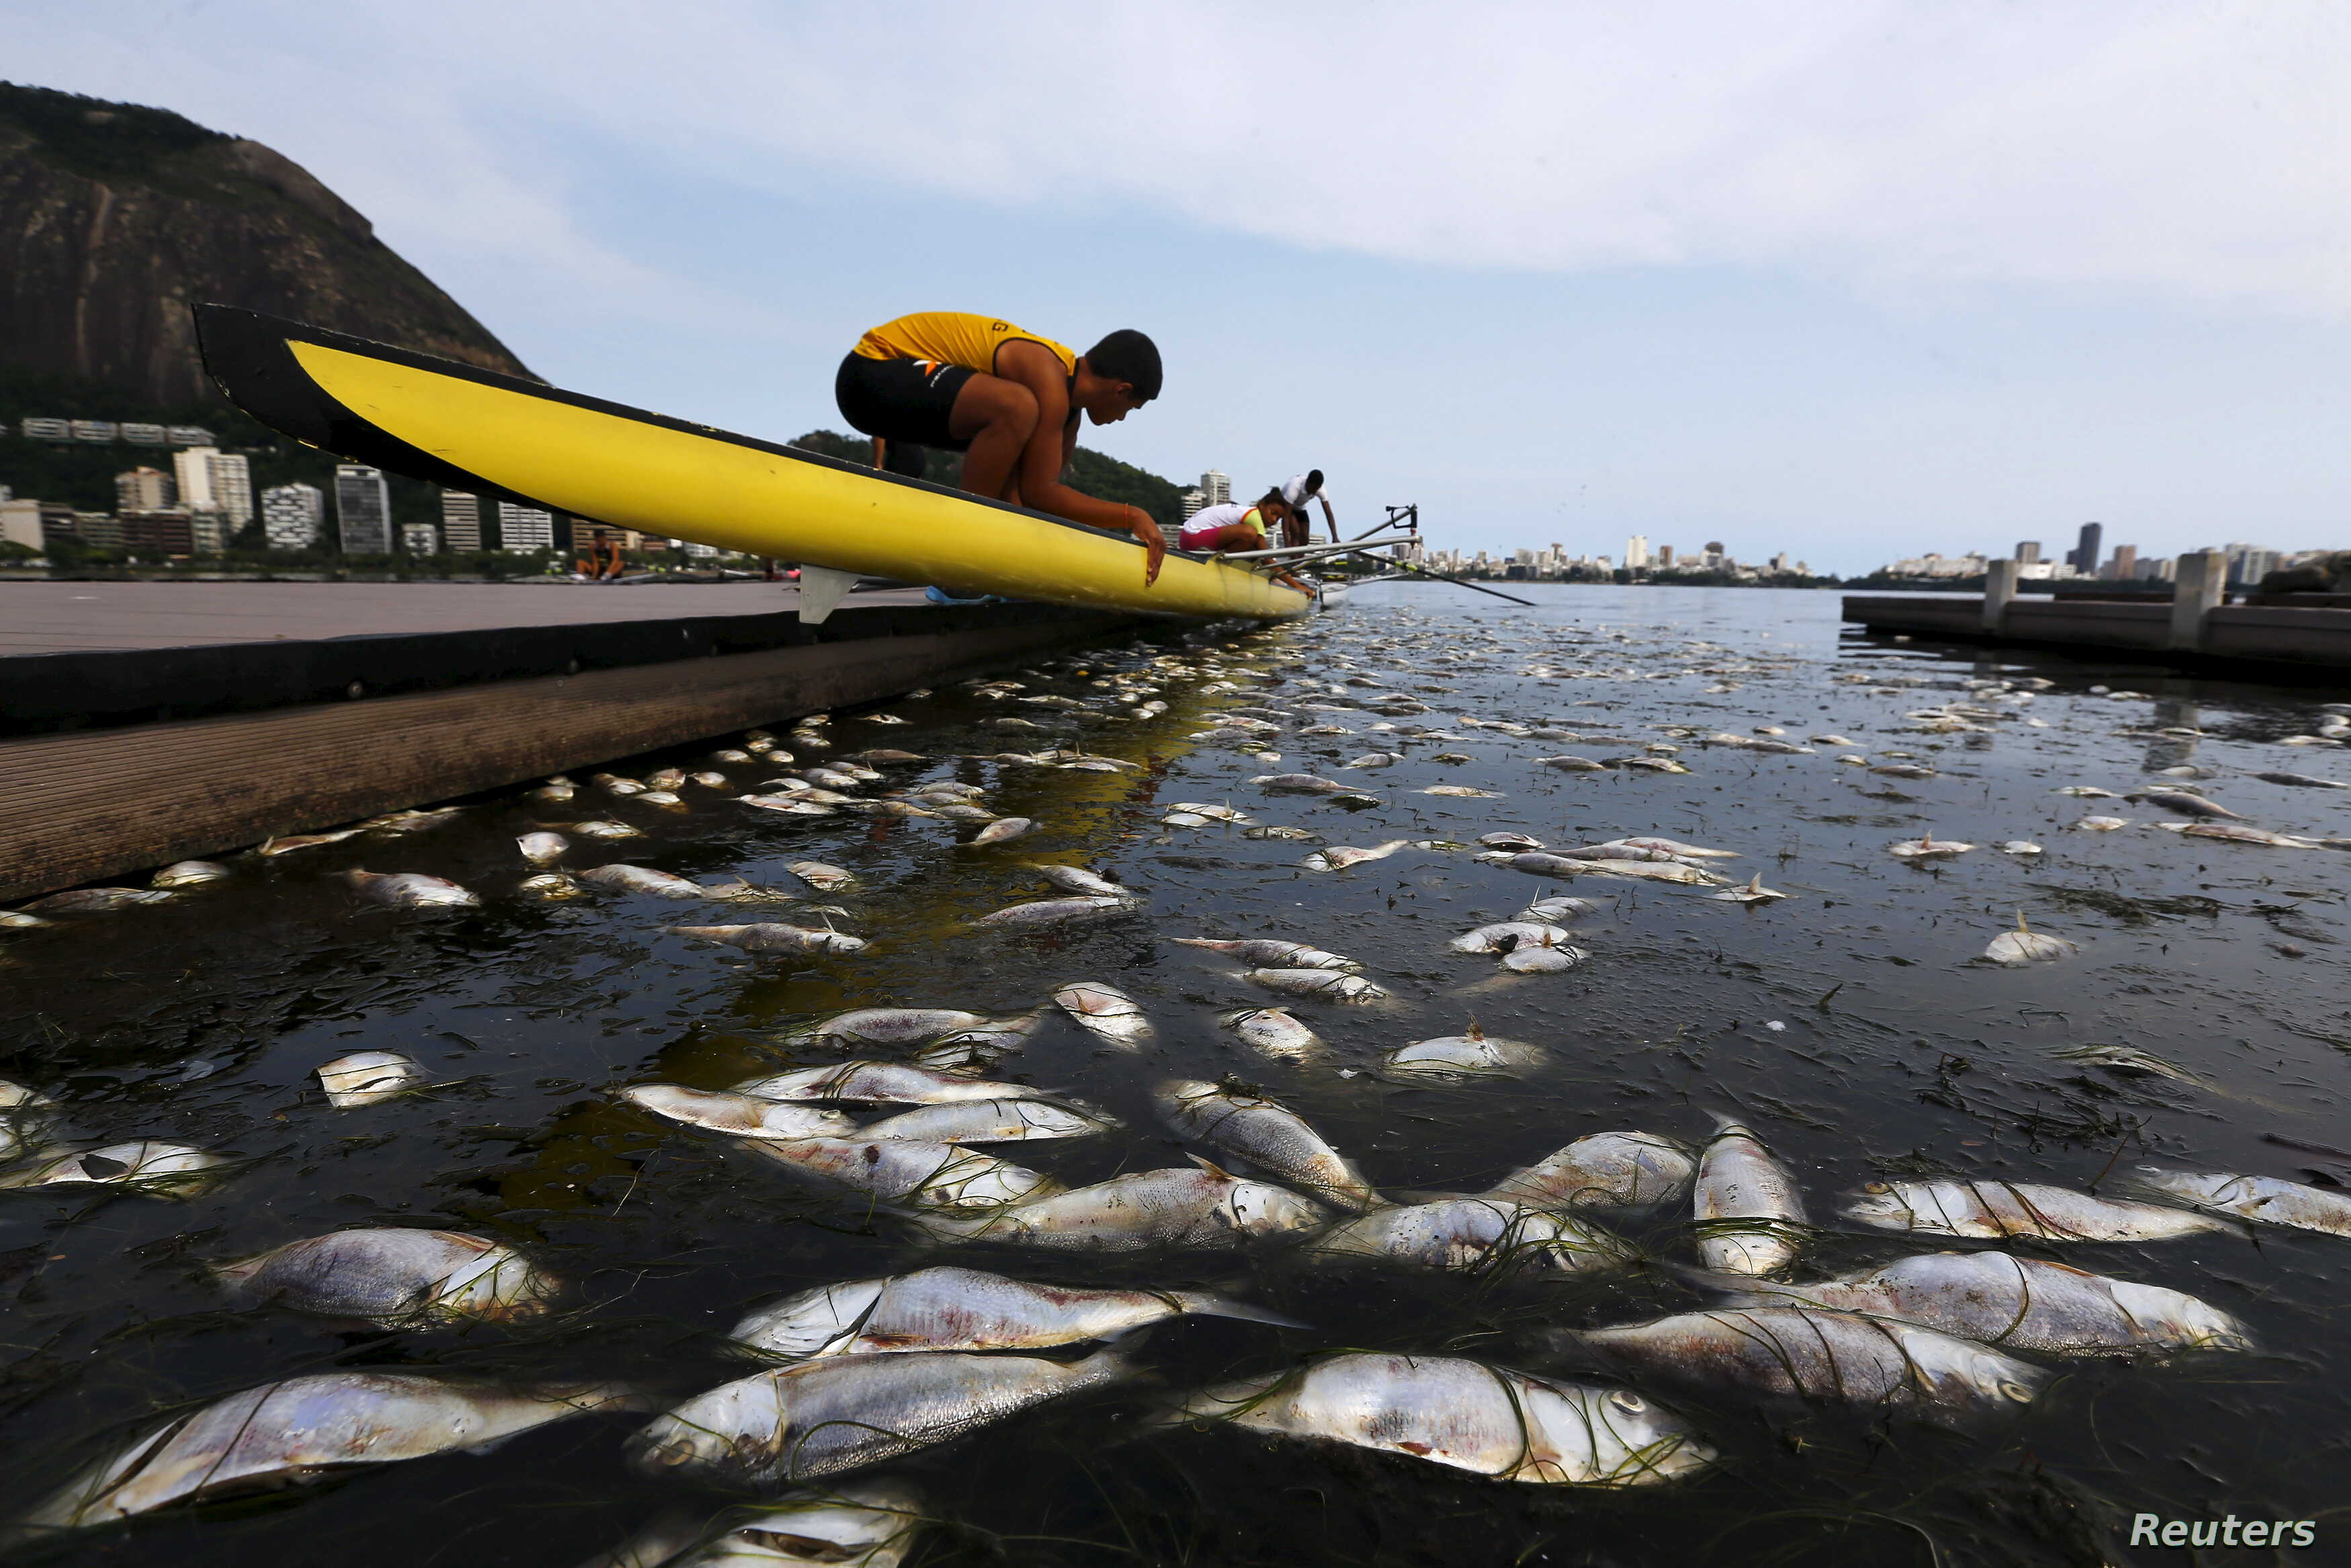 Dead fish are pictured next to a rowing athlete as he puts his boat on the water before a training session at the Rodrigo de Freitas lagoon, in Rio de Janeiro, Brazil, April 13, 2015.